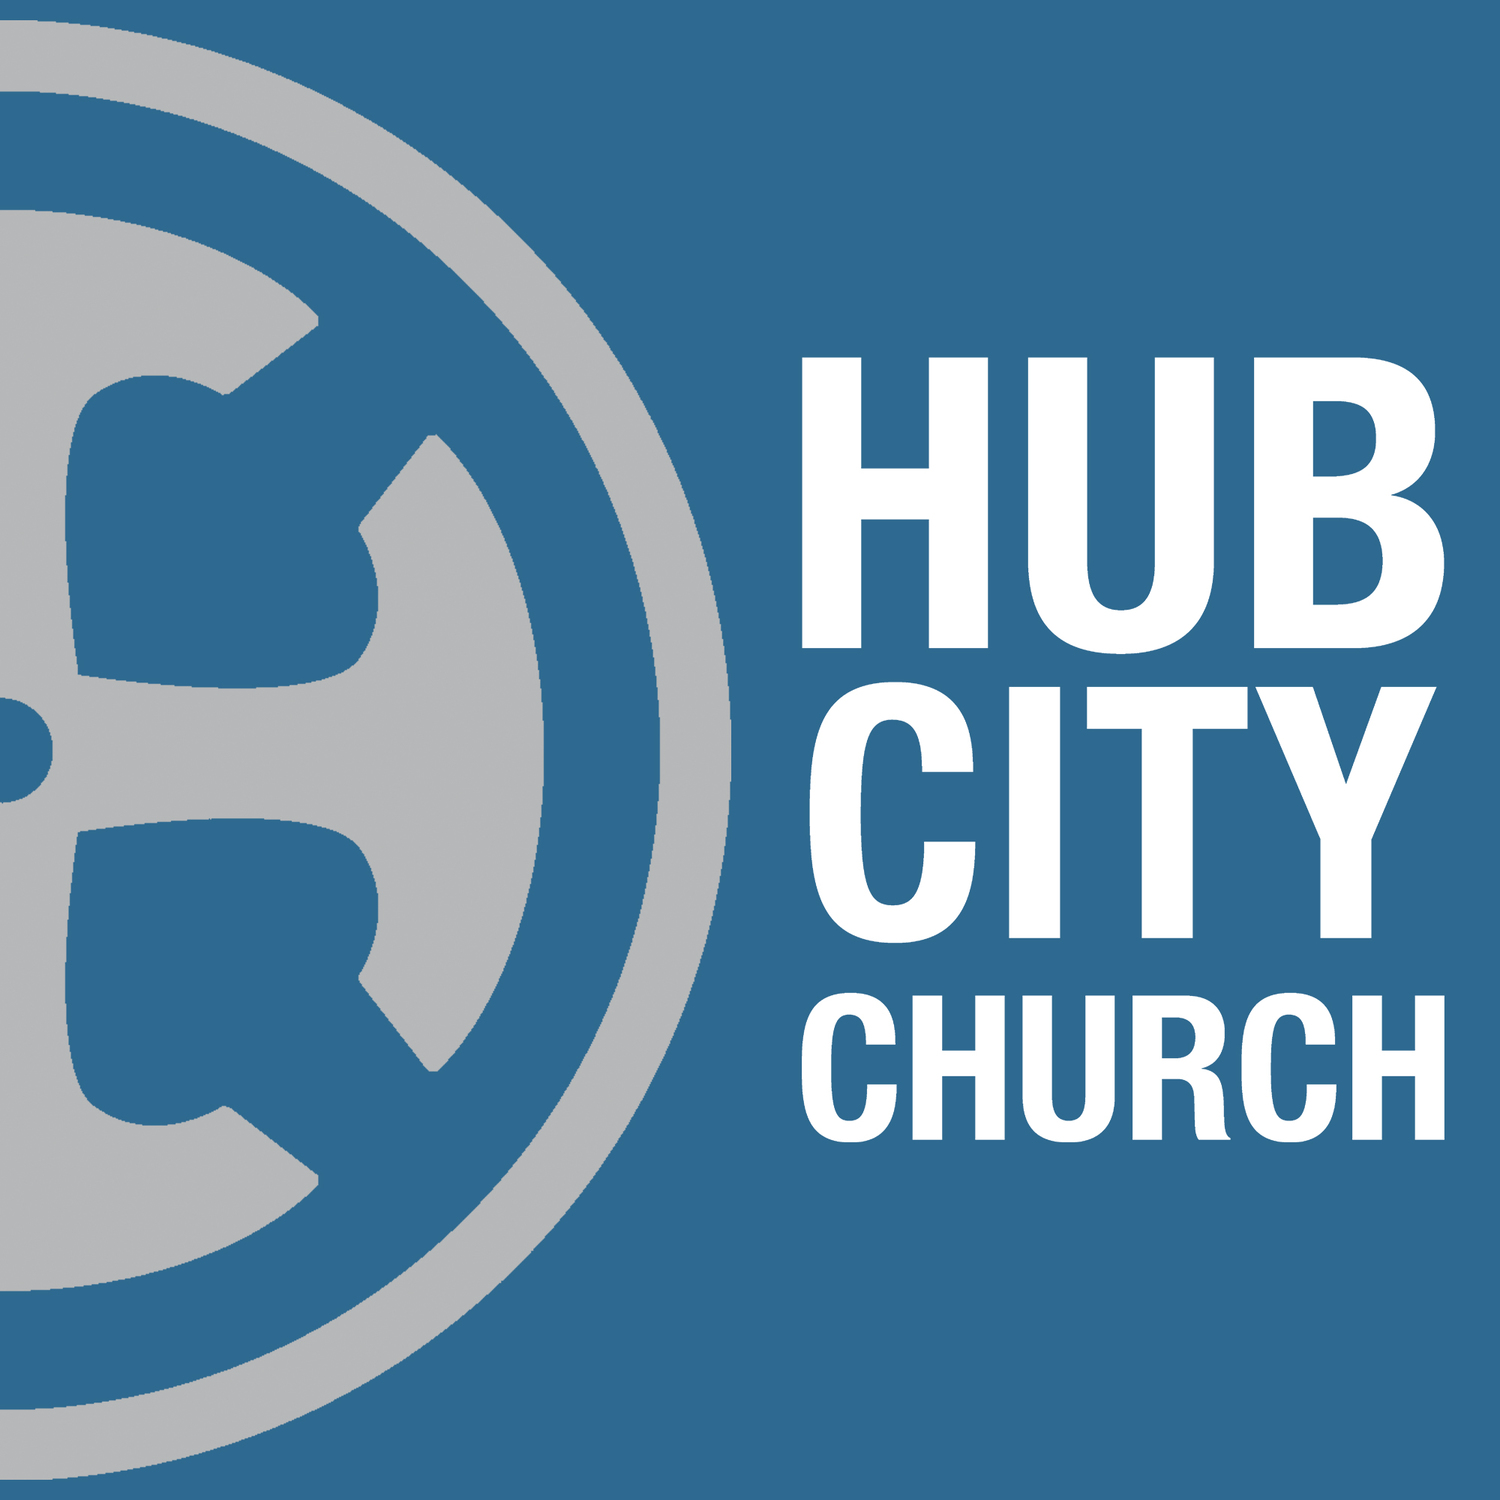 Messages - Hub City Church